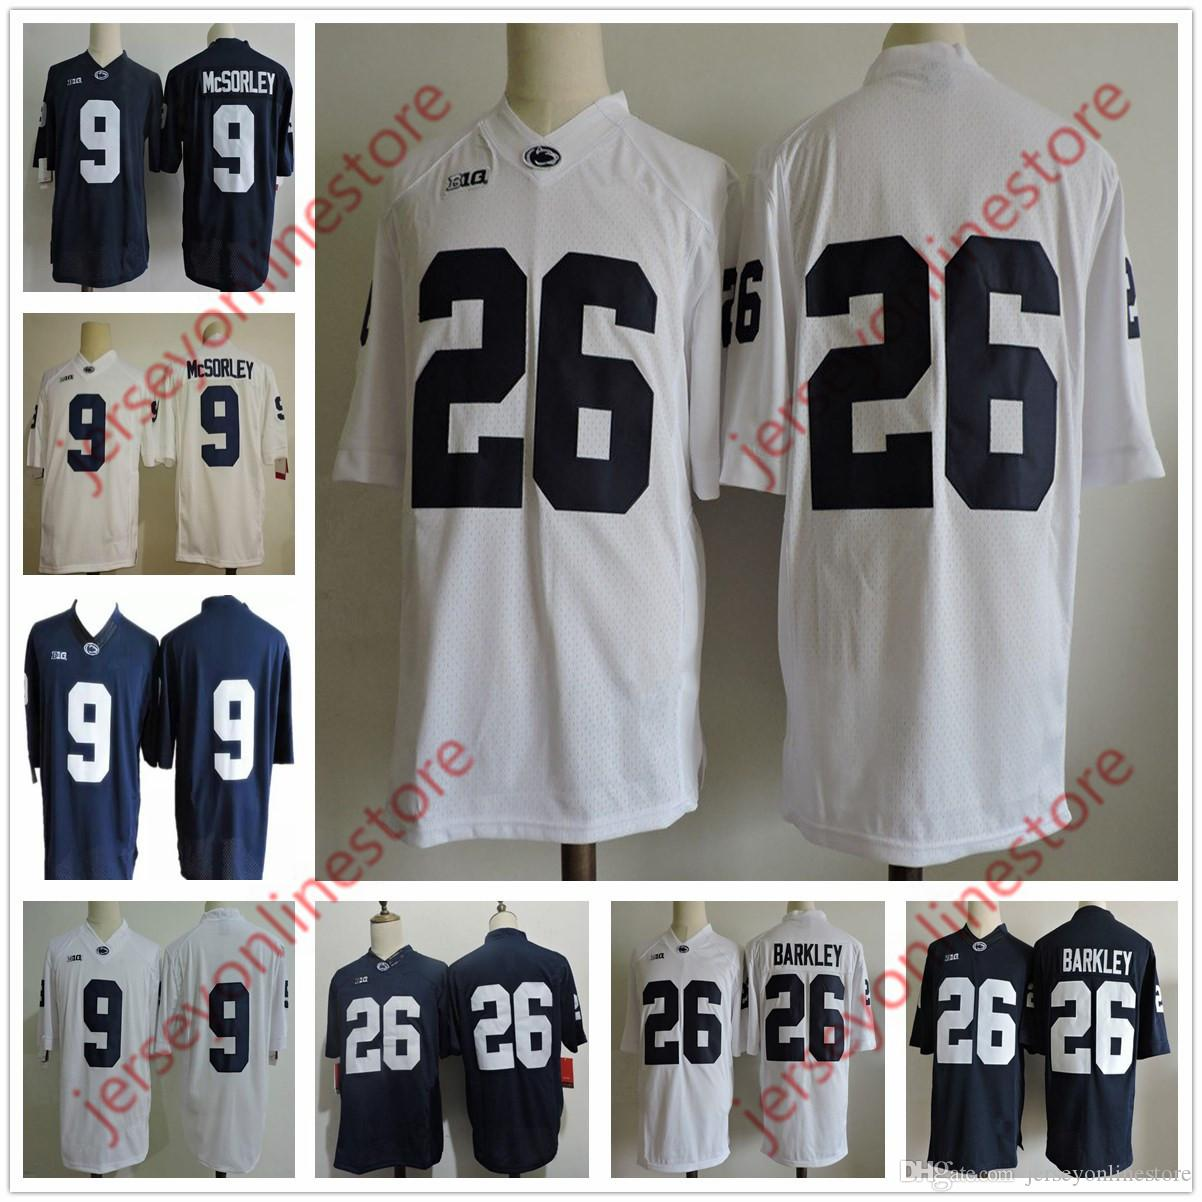 outlet store f1917 b88c2 Mens Penn State Nittany Lions 26# Saquon Barkley College Football Jerseys  Navy Blue White 9# Trace McSorley Jersey